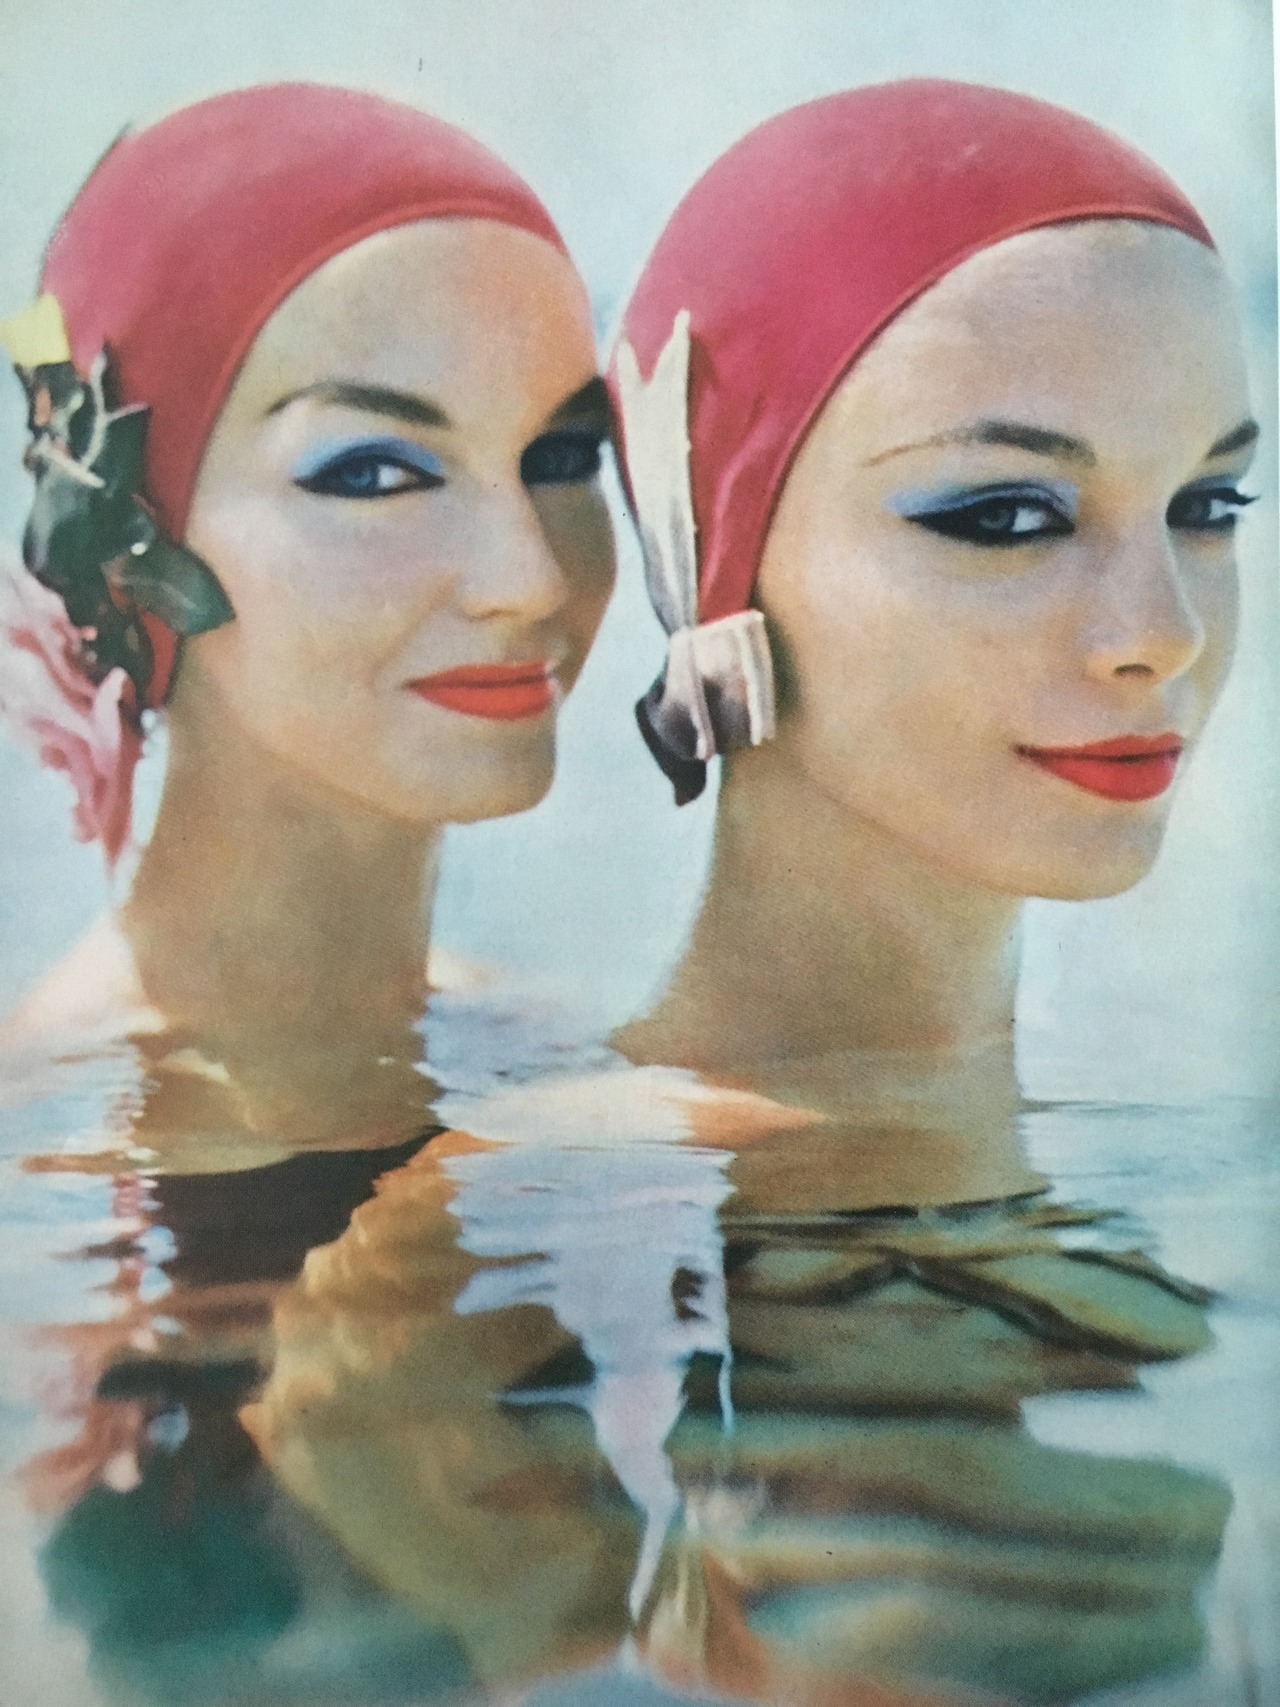 Vogue. June 1957.     Today's prompt was symmetrical, so I found these in sync bathing beauties.